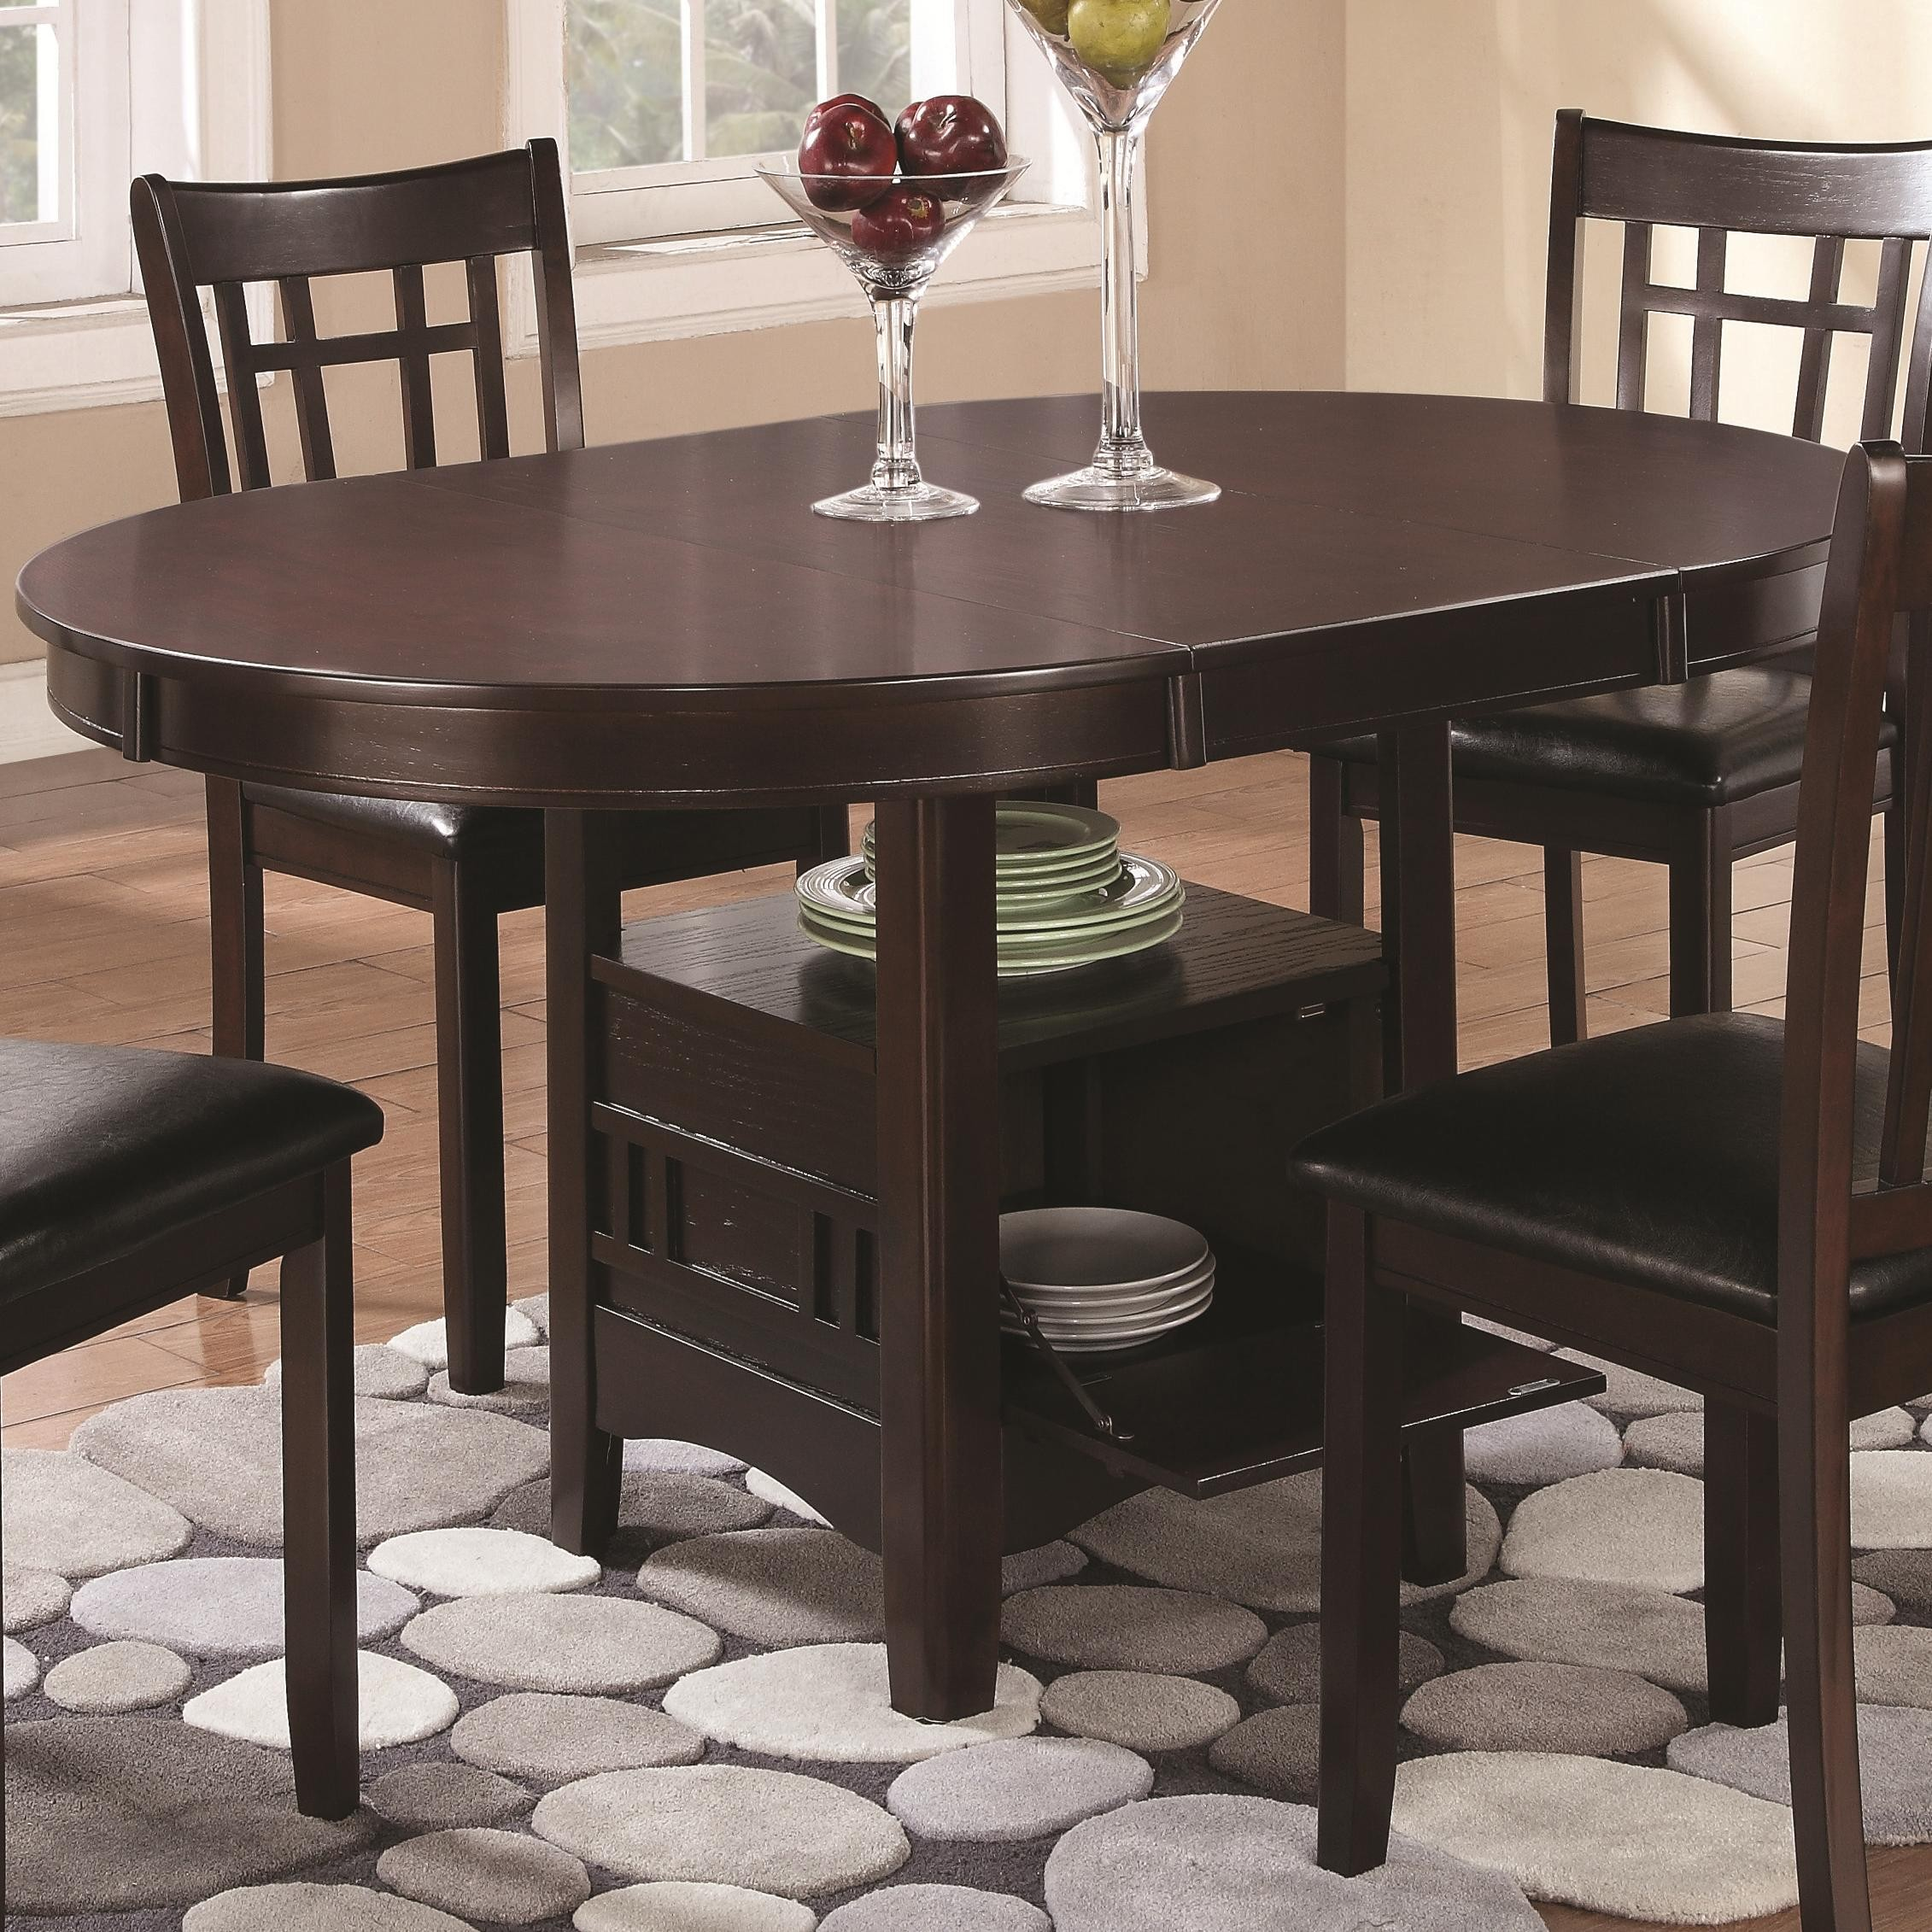 Linwood Extendable Dining Table from Coaster 102671